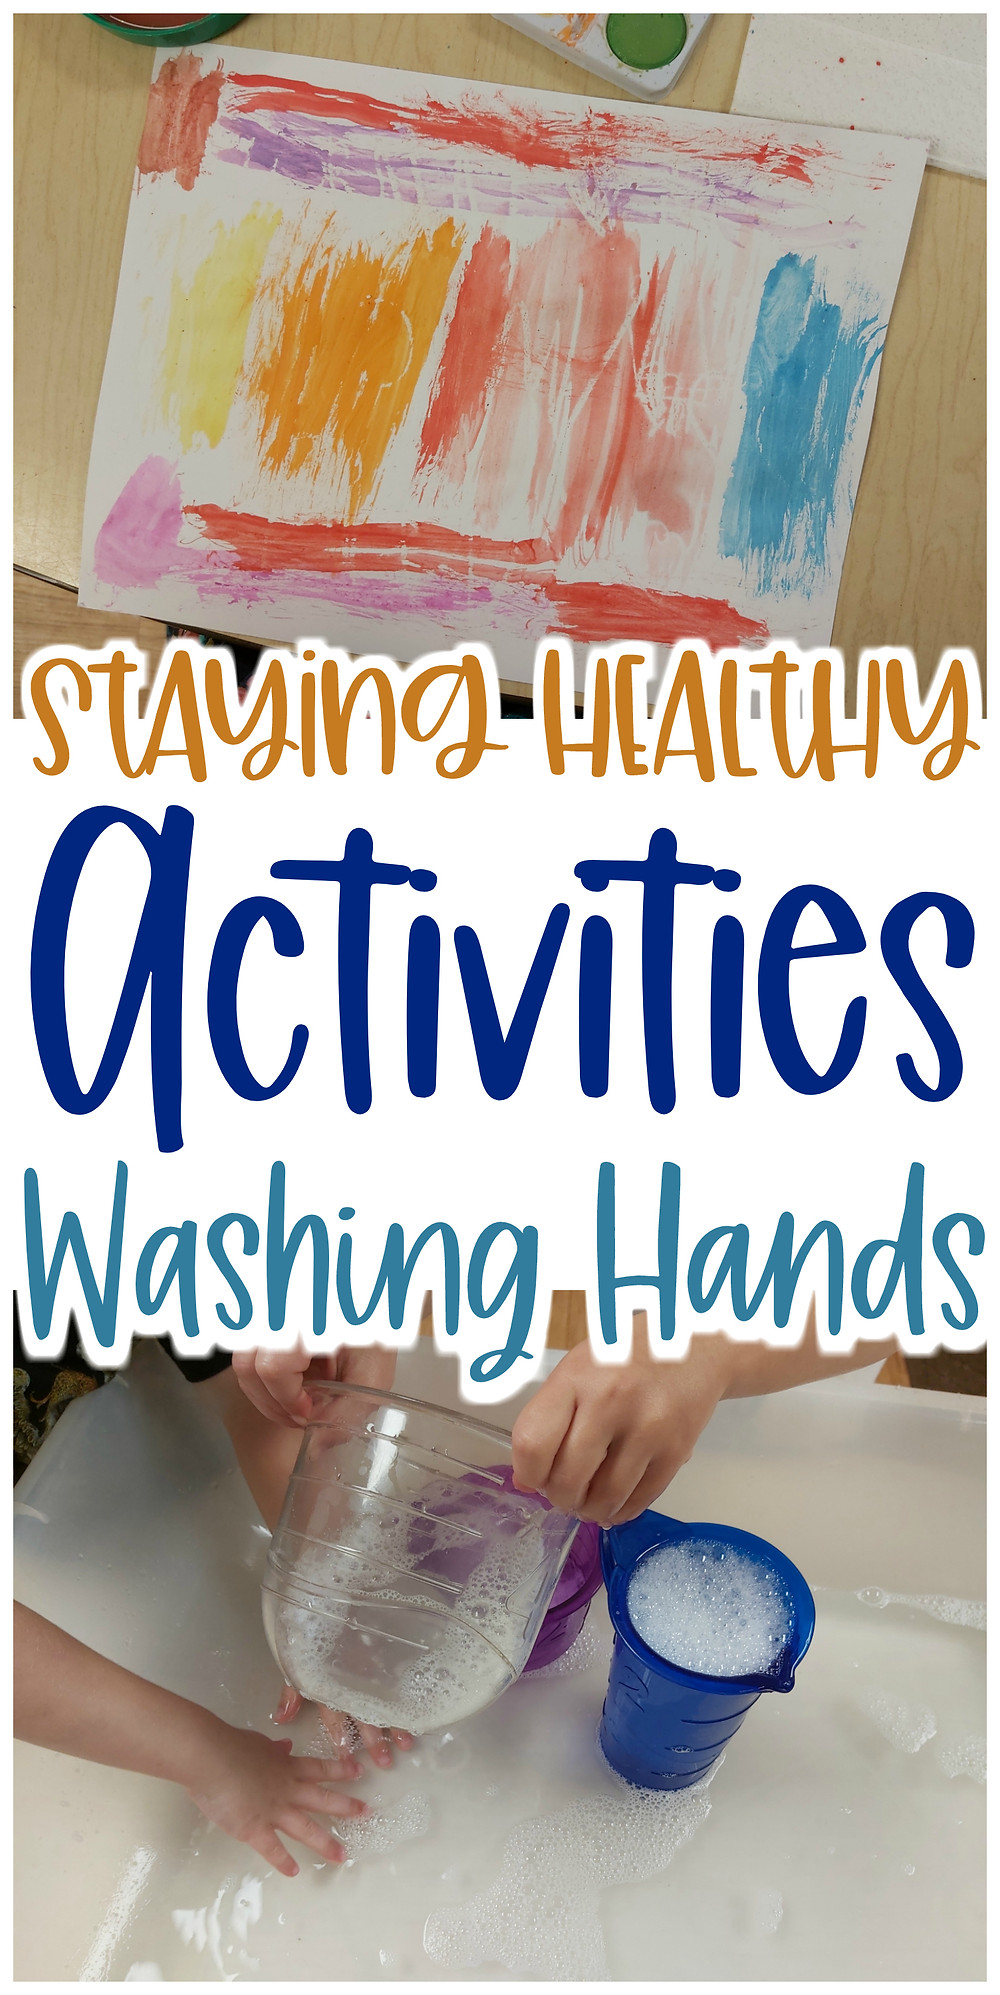 collage of washing hands activities with text: Staying Healthy Activities Washing Hands